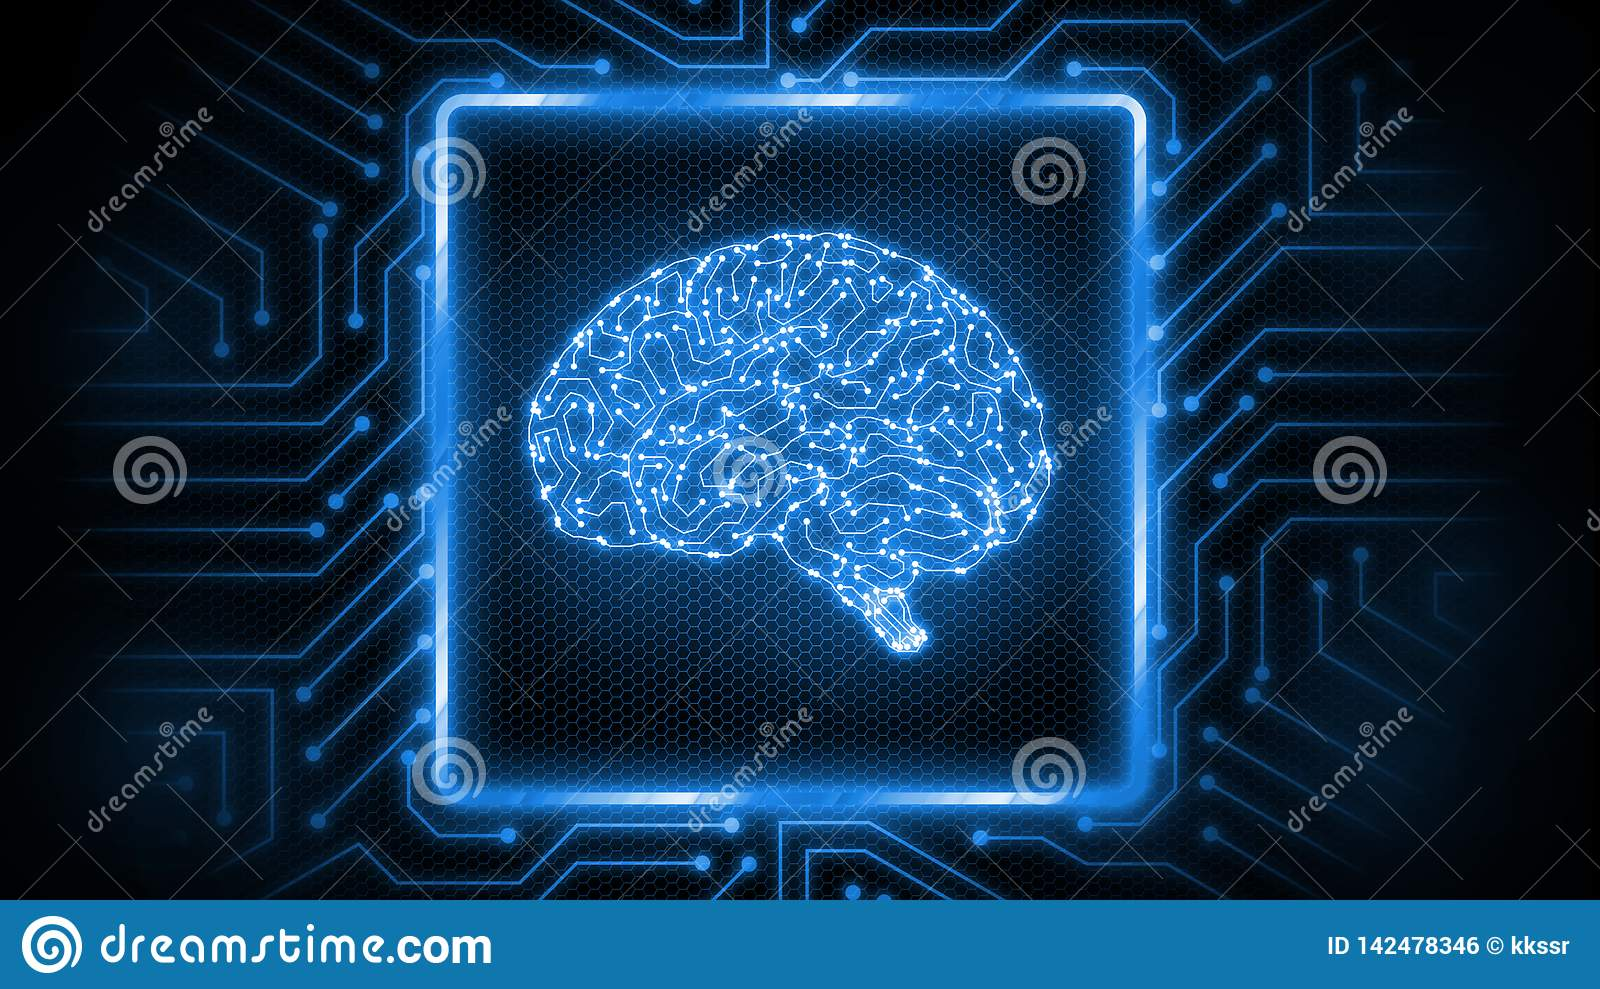 3D Rendering of abstract blue glowing circuit board background with brain logo at center. Perfect for Artificial Intelligence